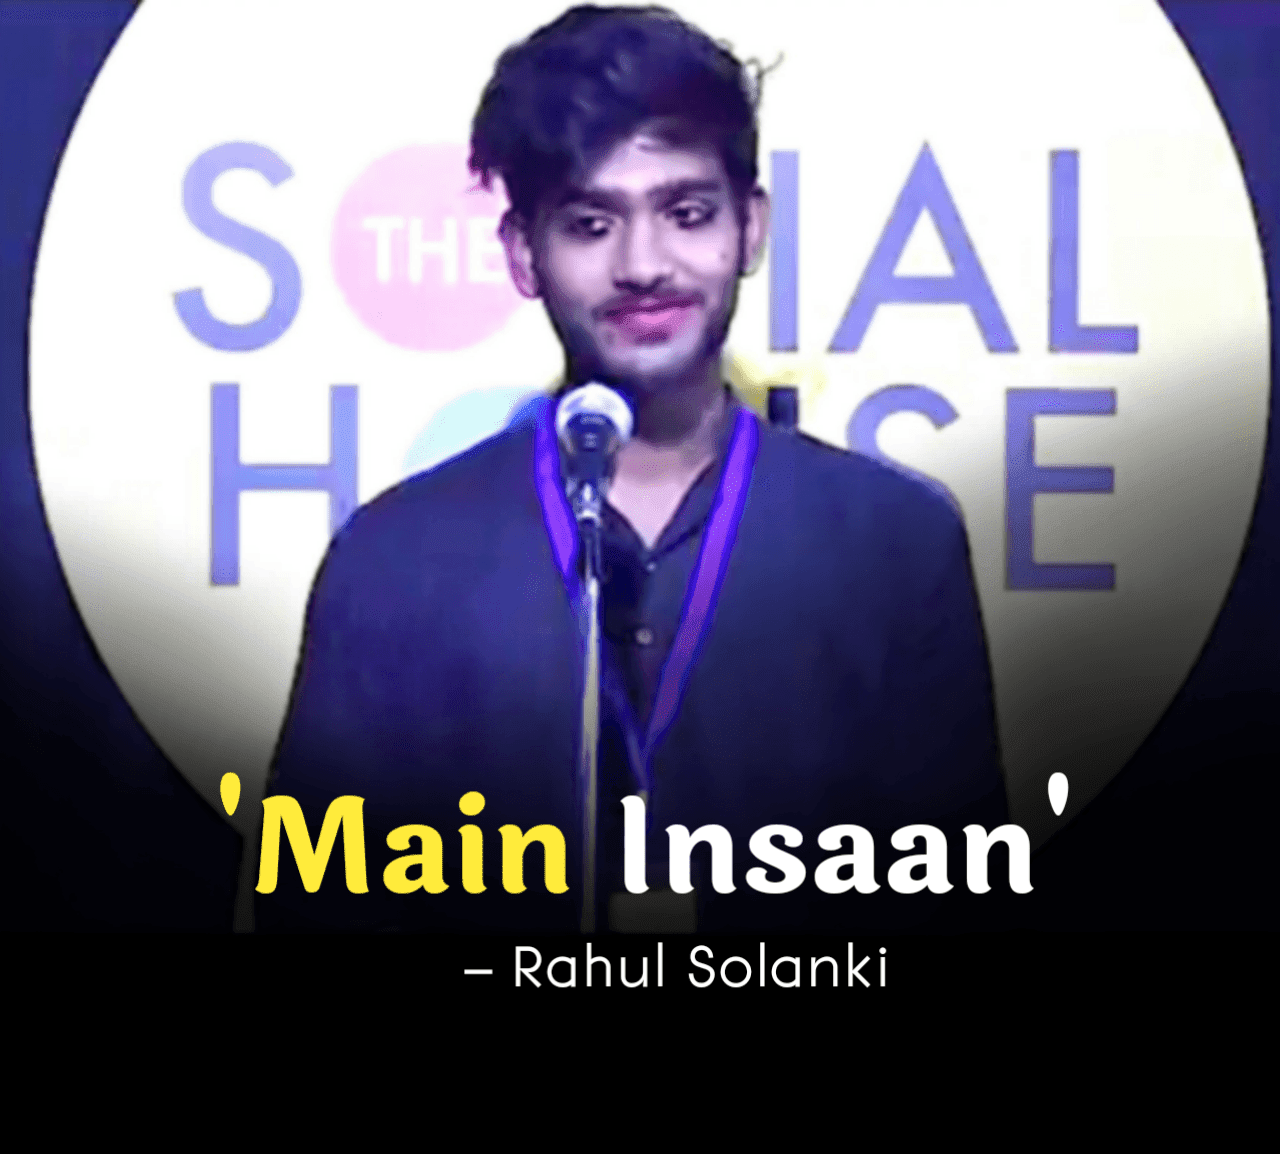 'Main Insaan' Poetry has written and performed by Rahul Solanki on The Social House's Plateform.